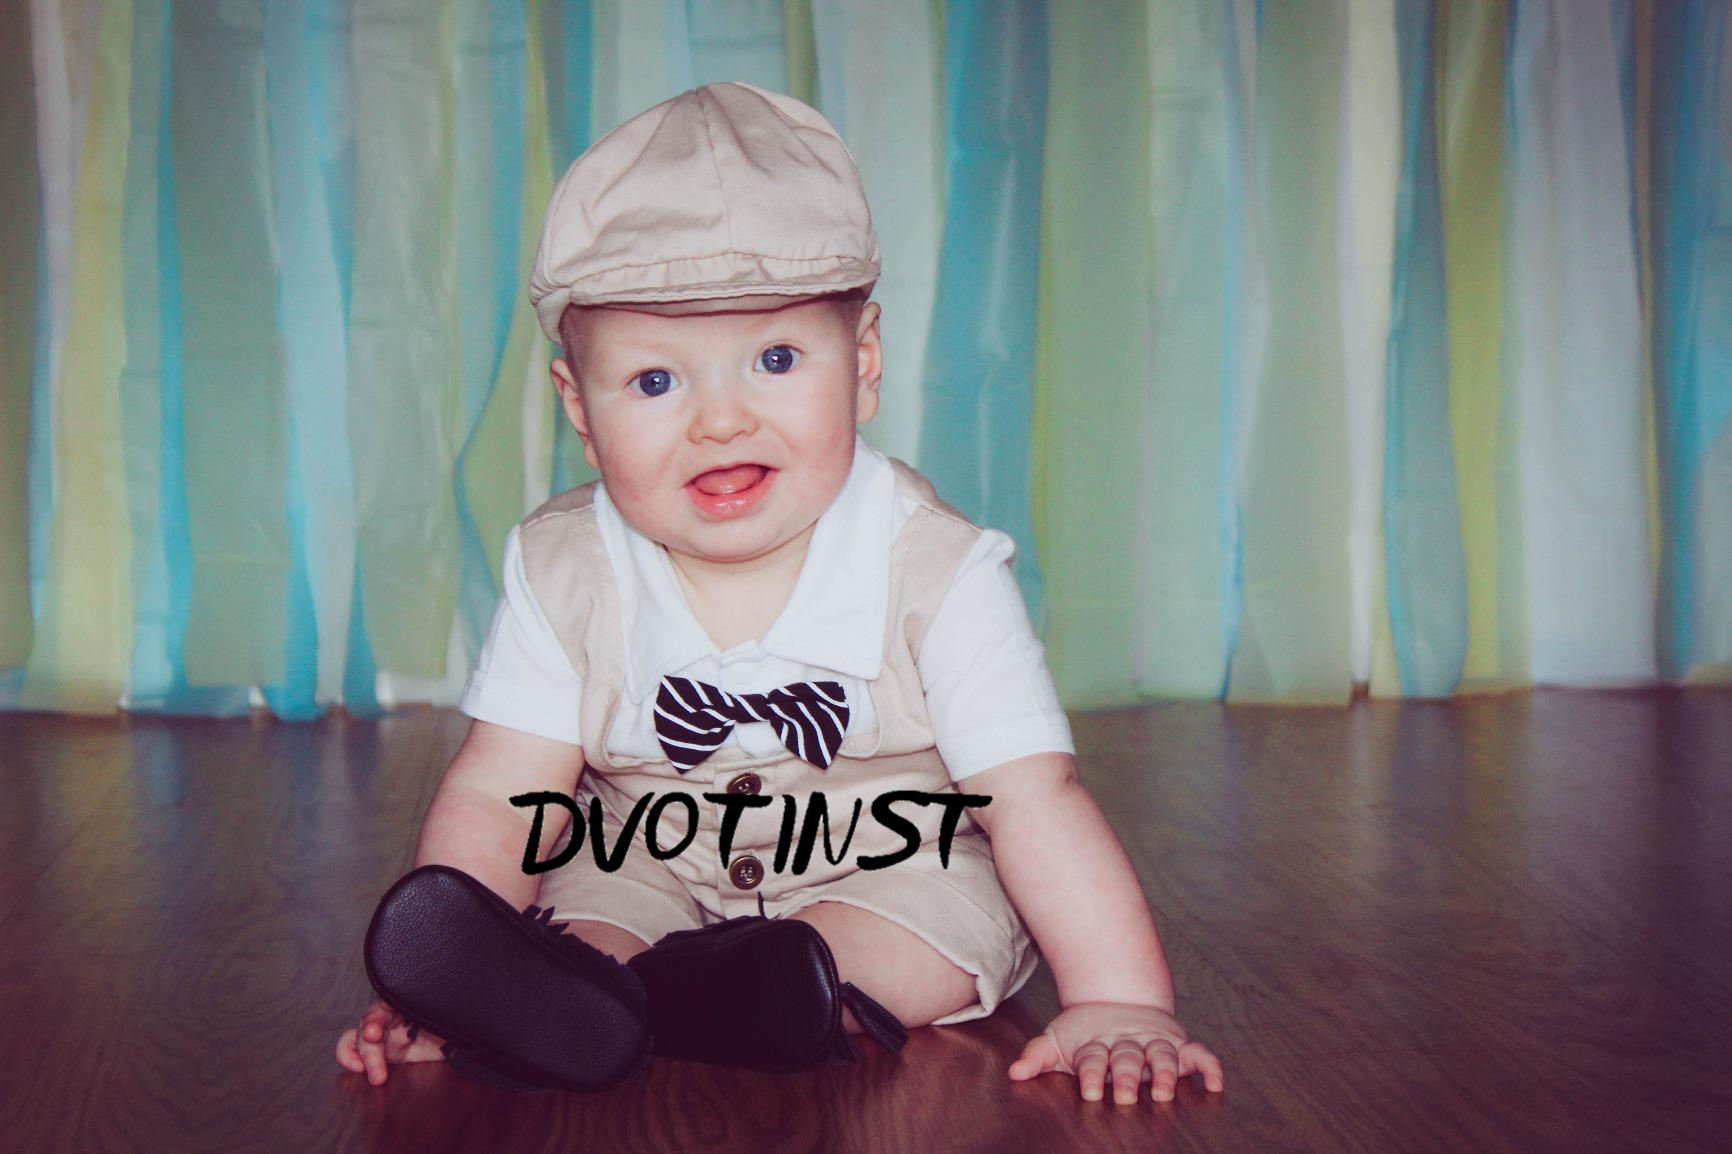 Delighted Baby Wedding Outfits Images - Wedding Ideas - memiocall.com